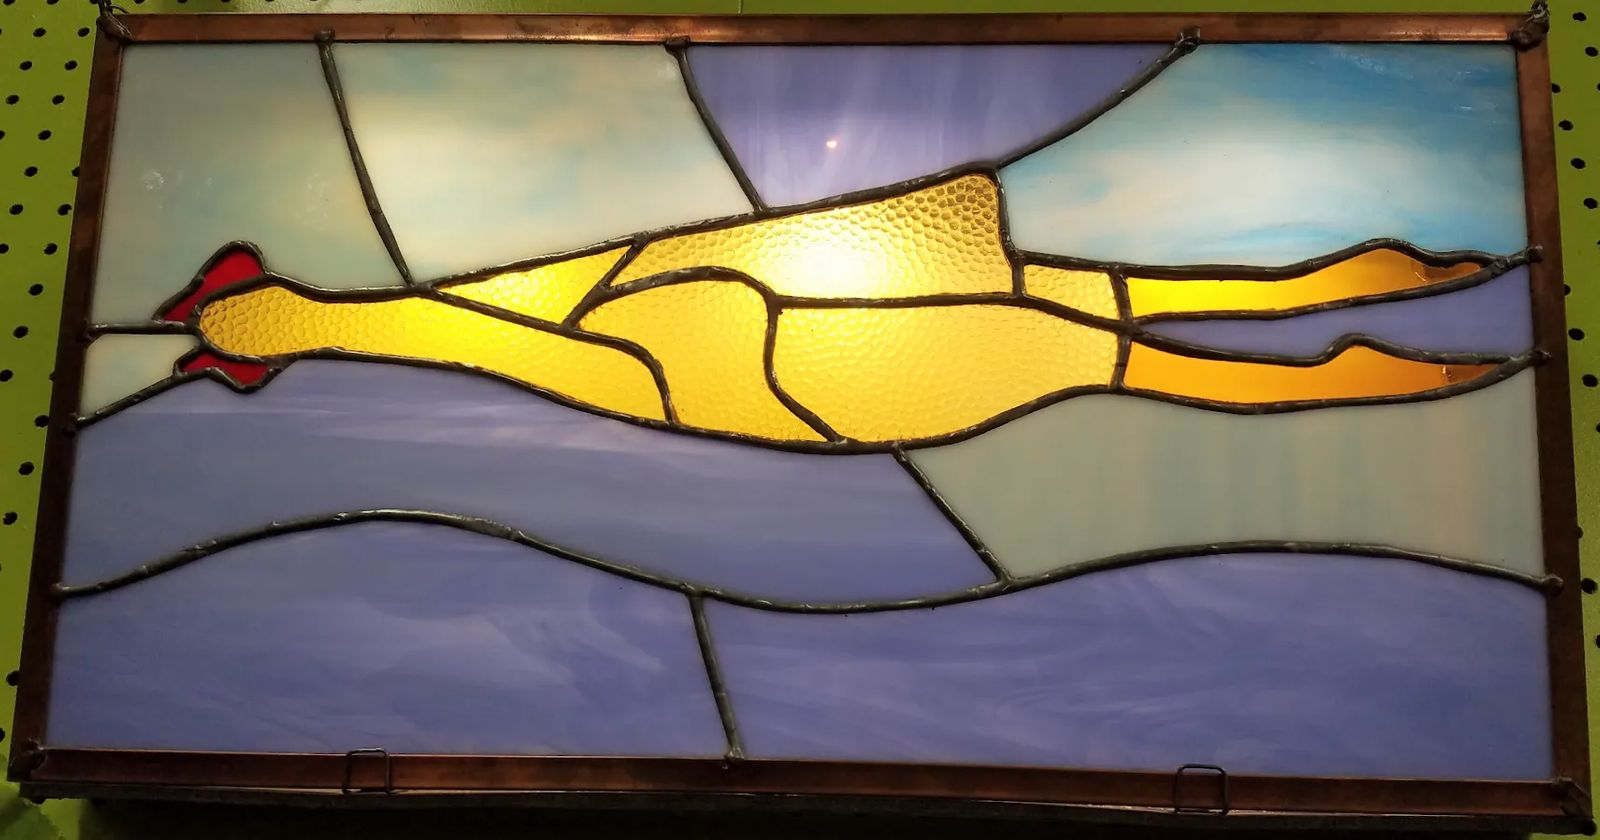 A Photo A stained-glass representation of a rubber chicken in Archie McPhee's world-famous rubber chicken museum in Seattle, Washington